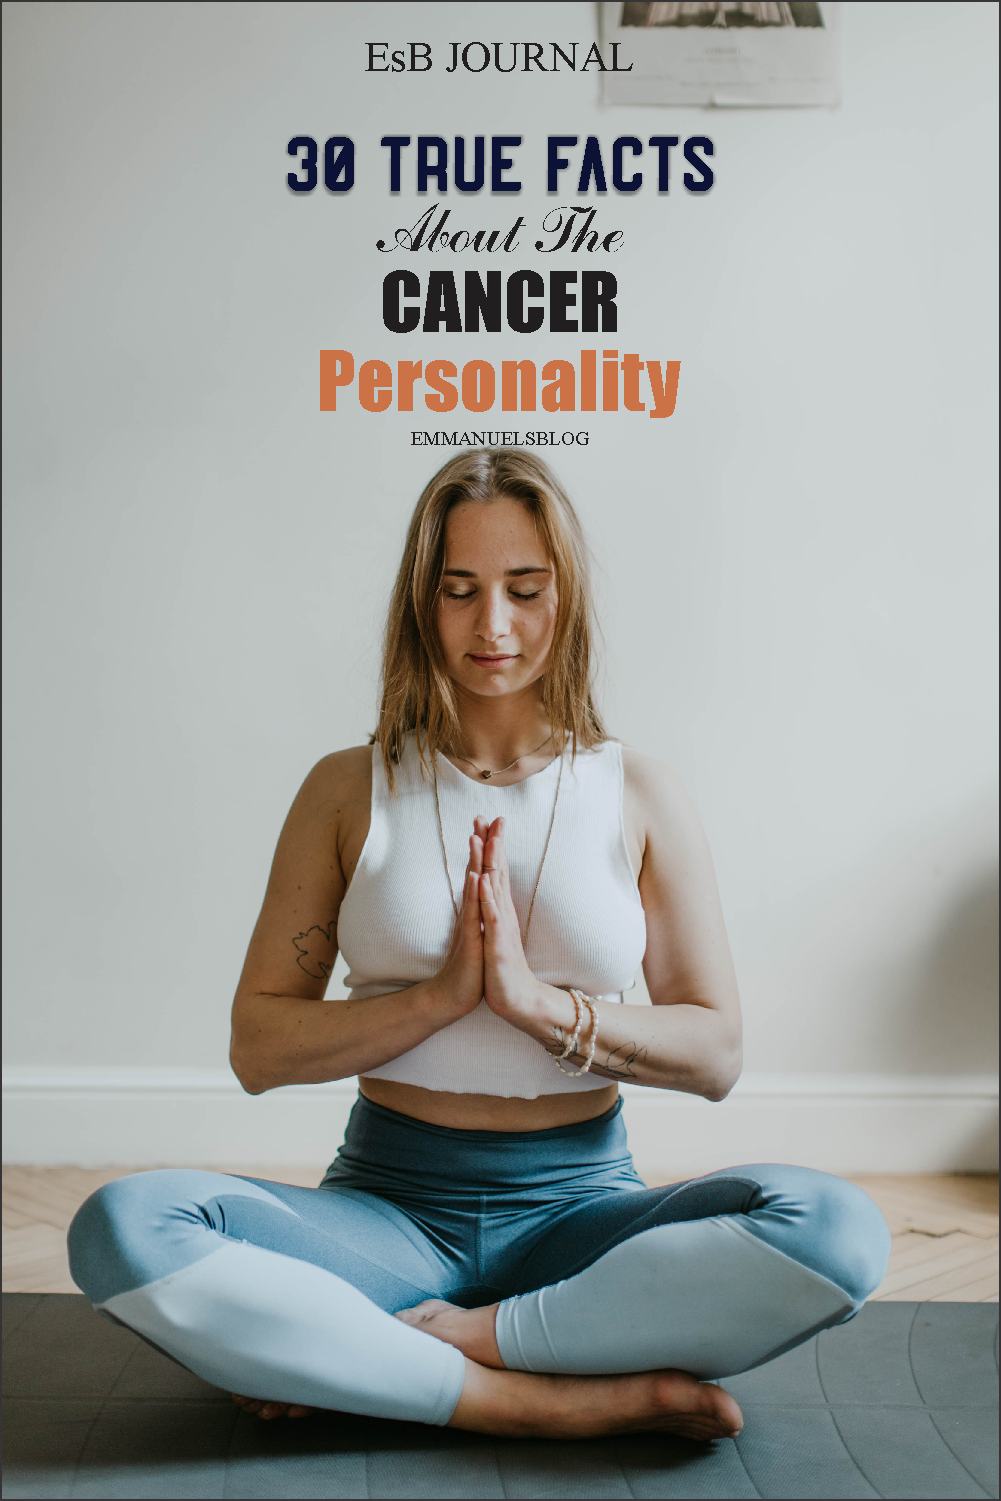 30 True Facts About The Cancer Personality